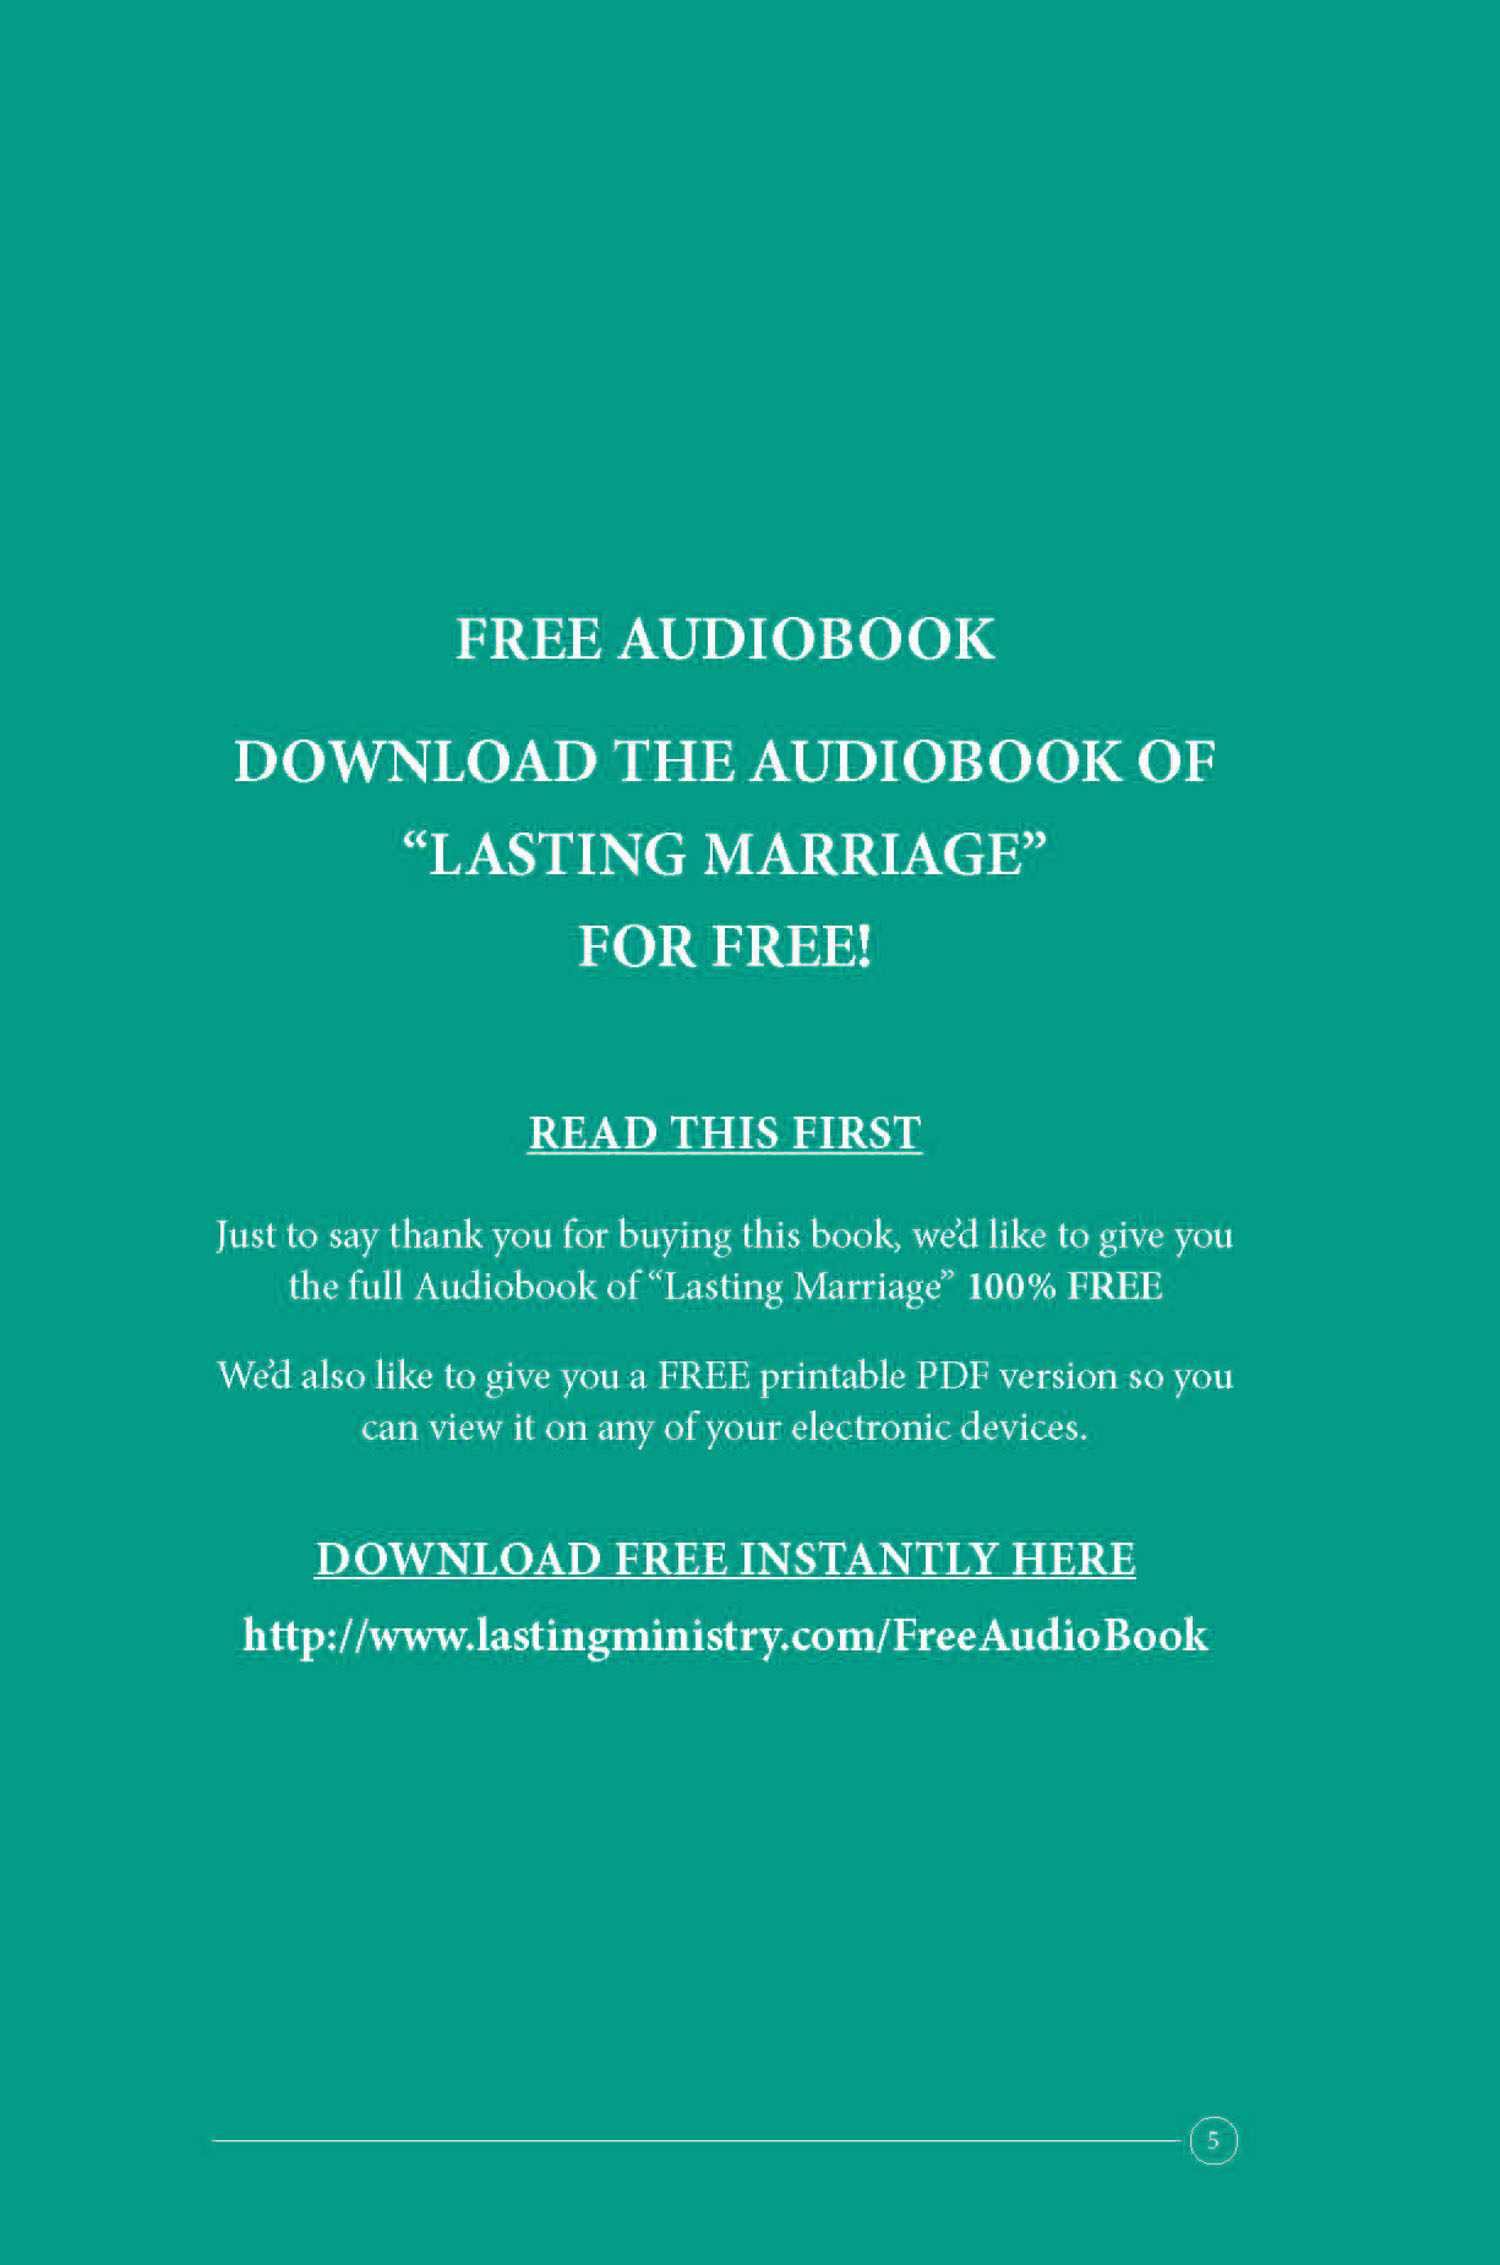 print_last_marriage_Page_005